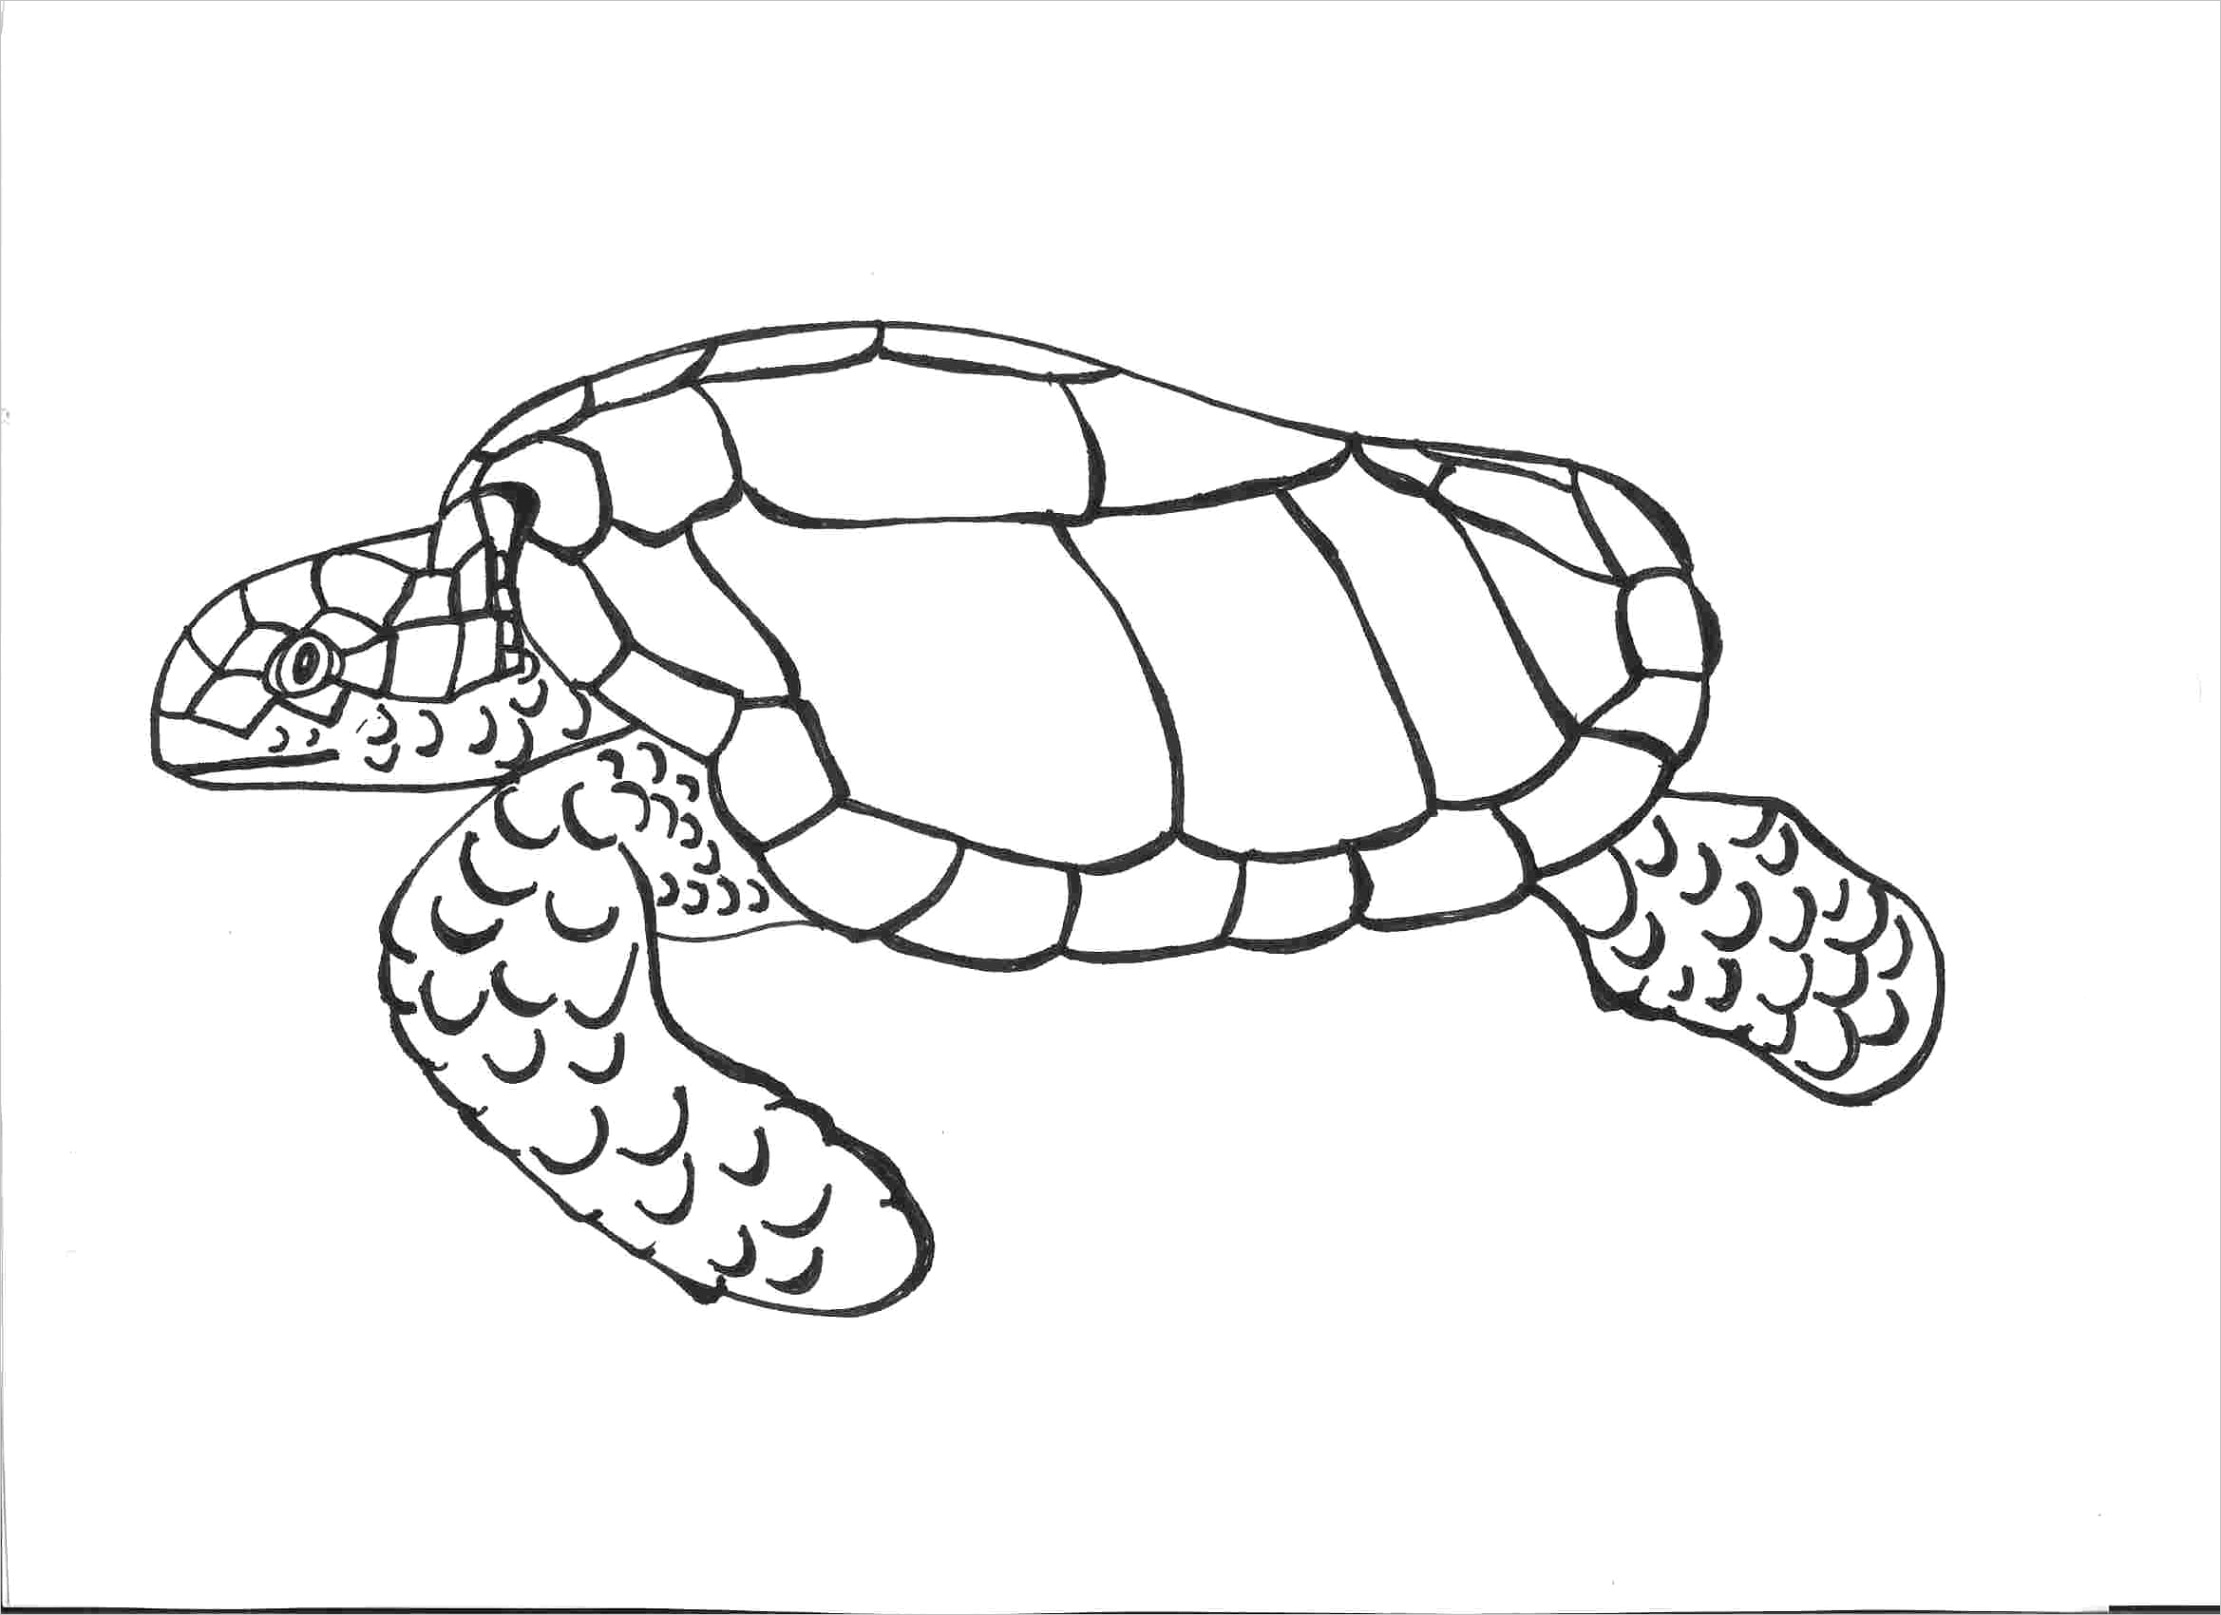 turtle coloring pagesml